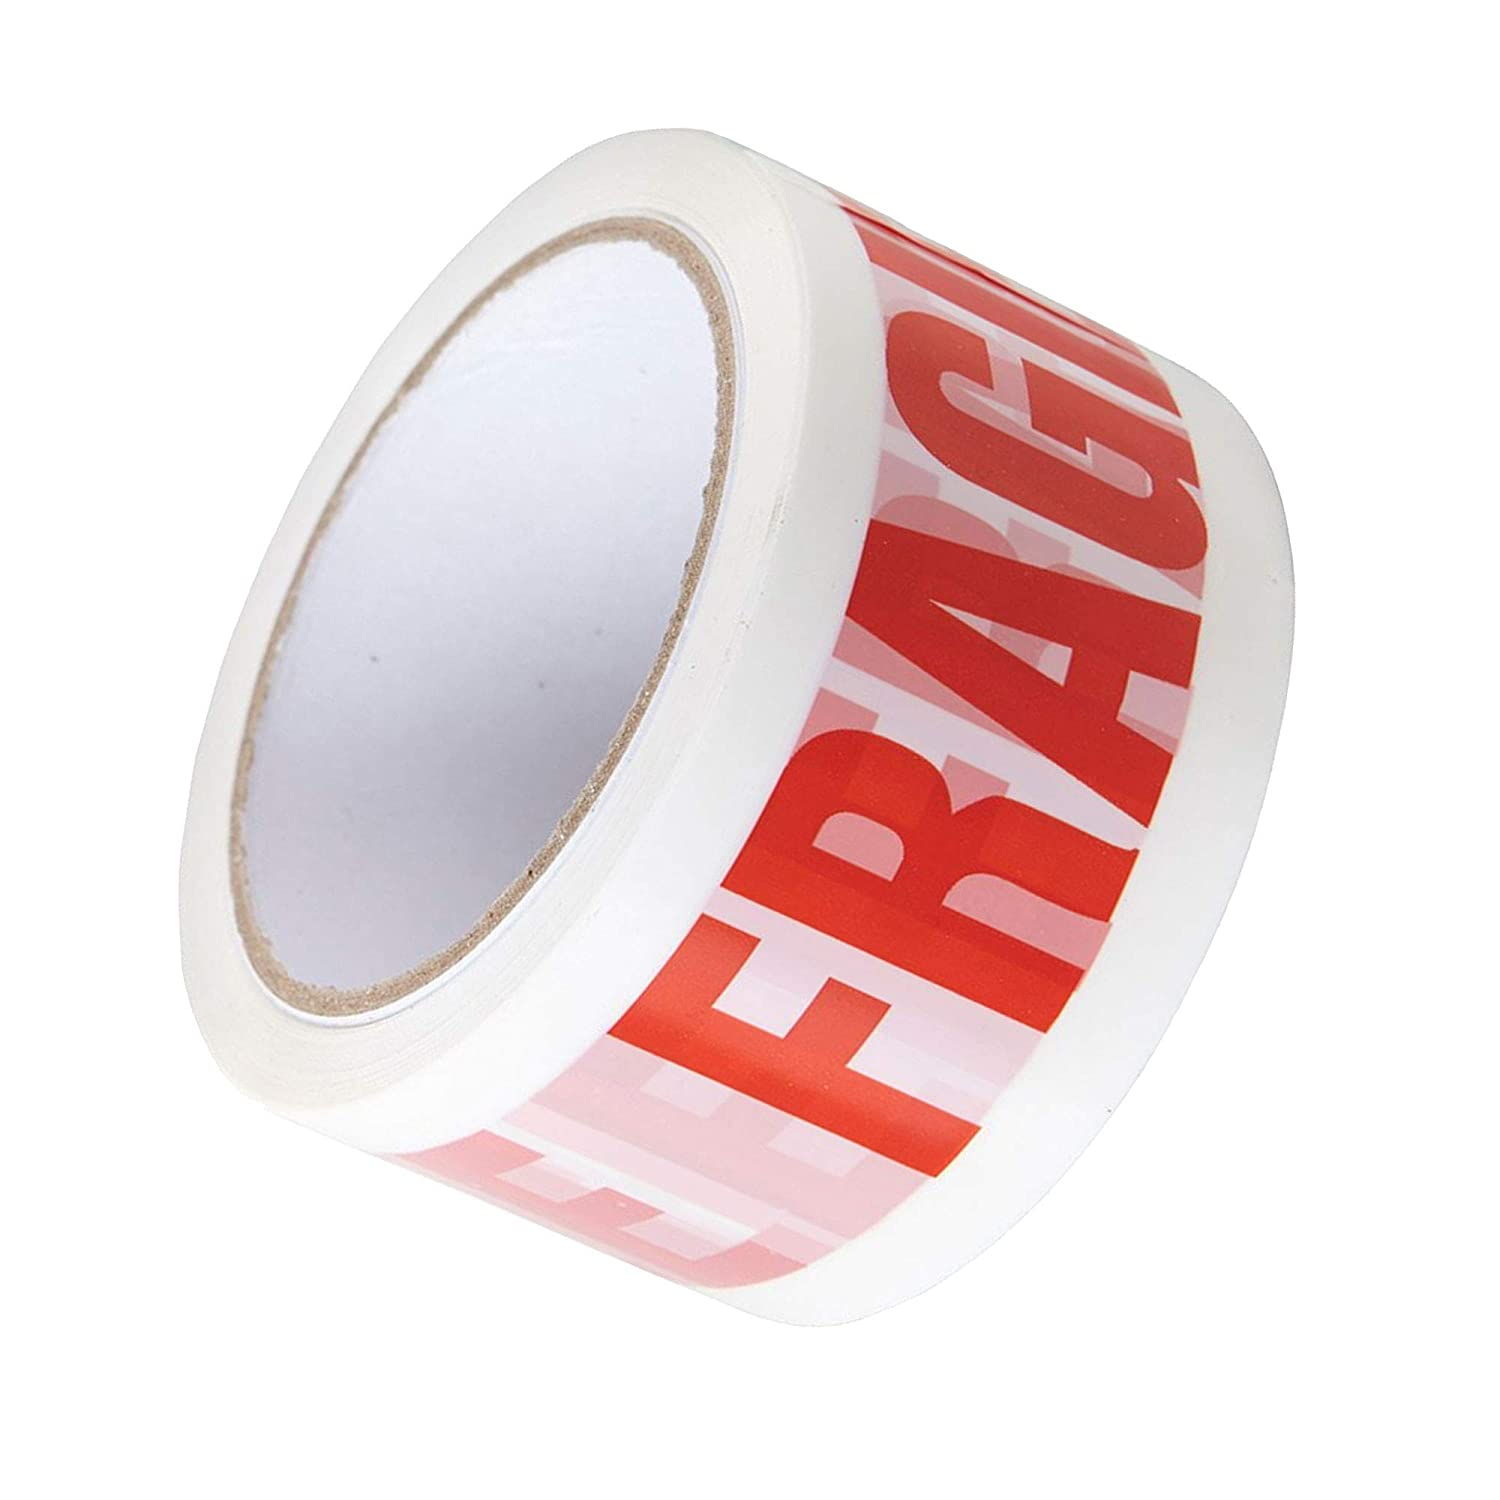 STRONG PACKING TAPE CLEAR FRAGILE 48mm x 50M Rolls PARCEL TAPE BROWN